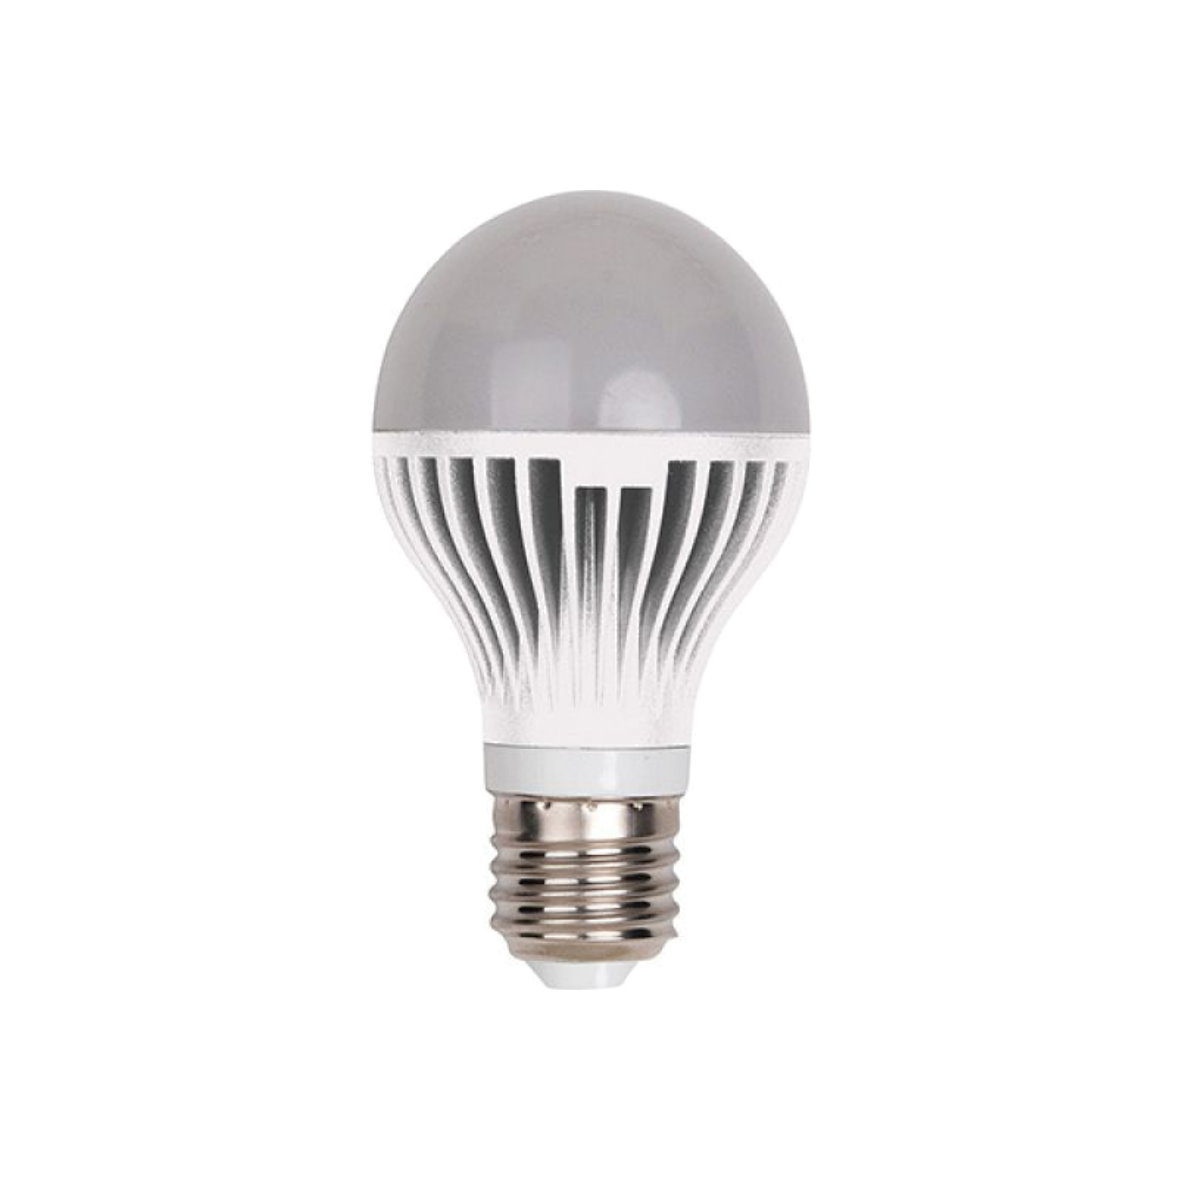 led smd leuchtmittel matt spot strahler lampe globe sockel opal glas bulb lamp ebay. Black Bedroom Furniture Sets. Home Design Ideas